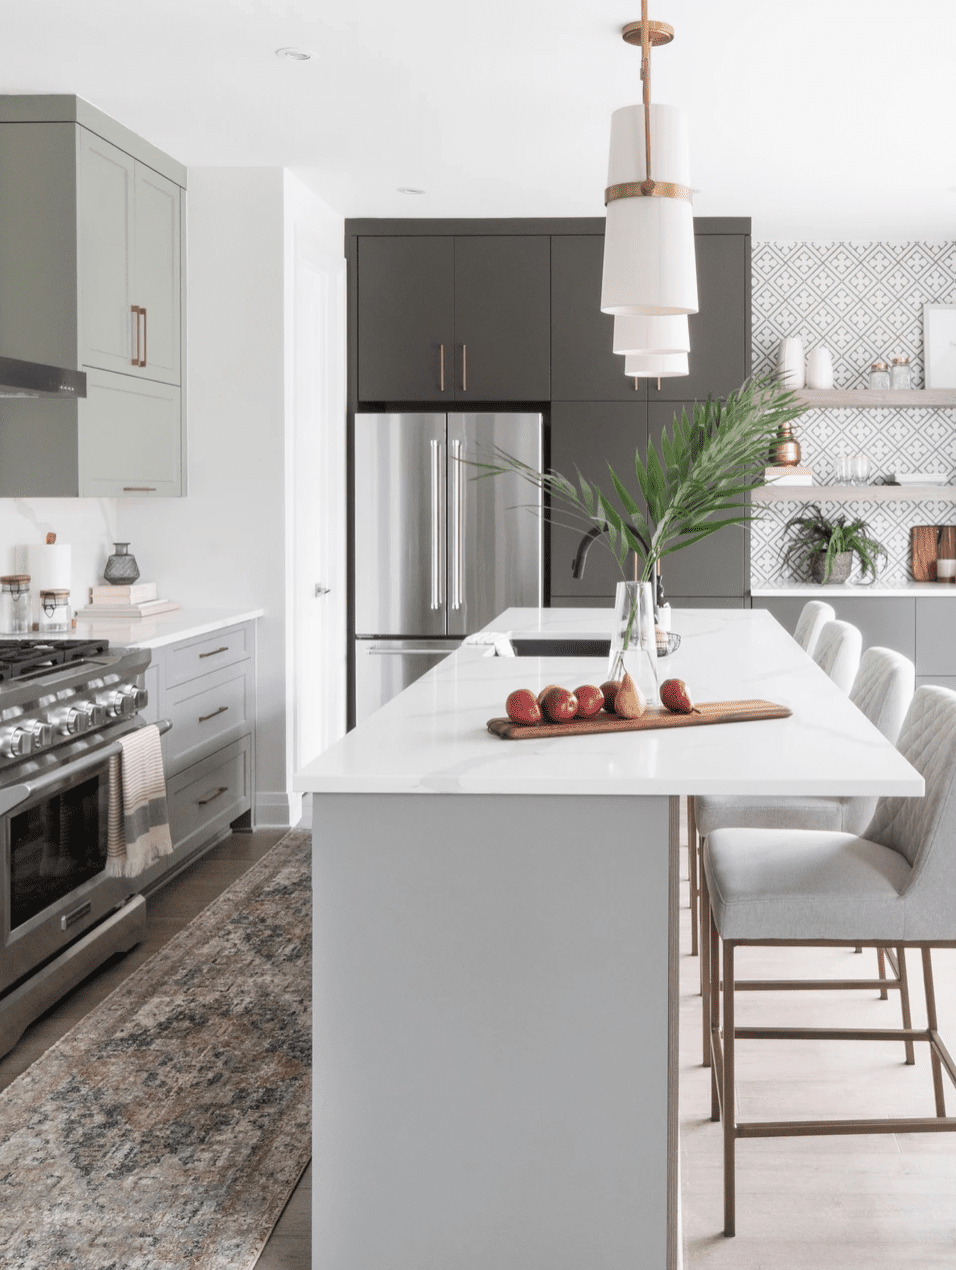 A kitchen with light gray cabinets and dark gray cabinets